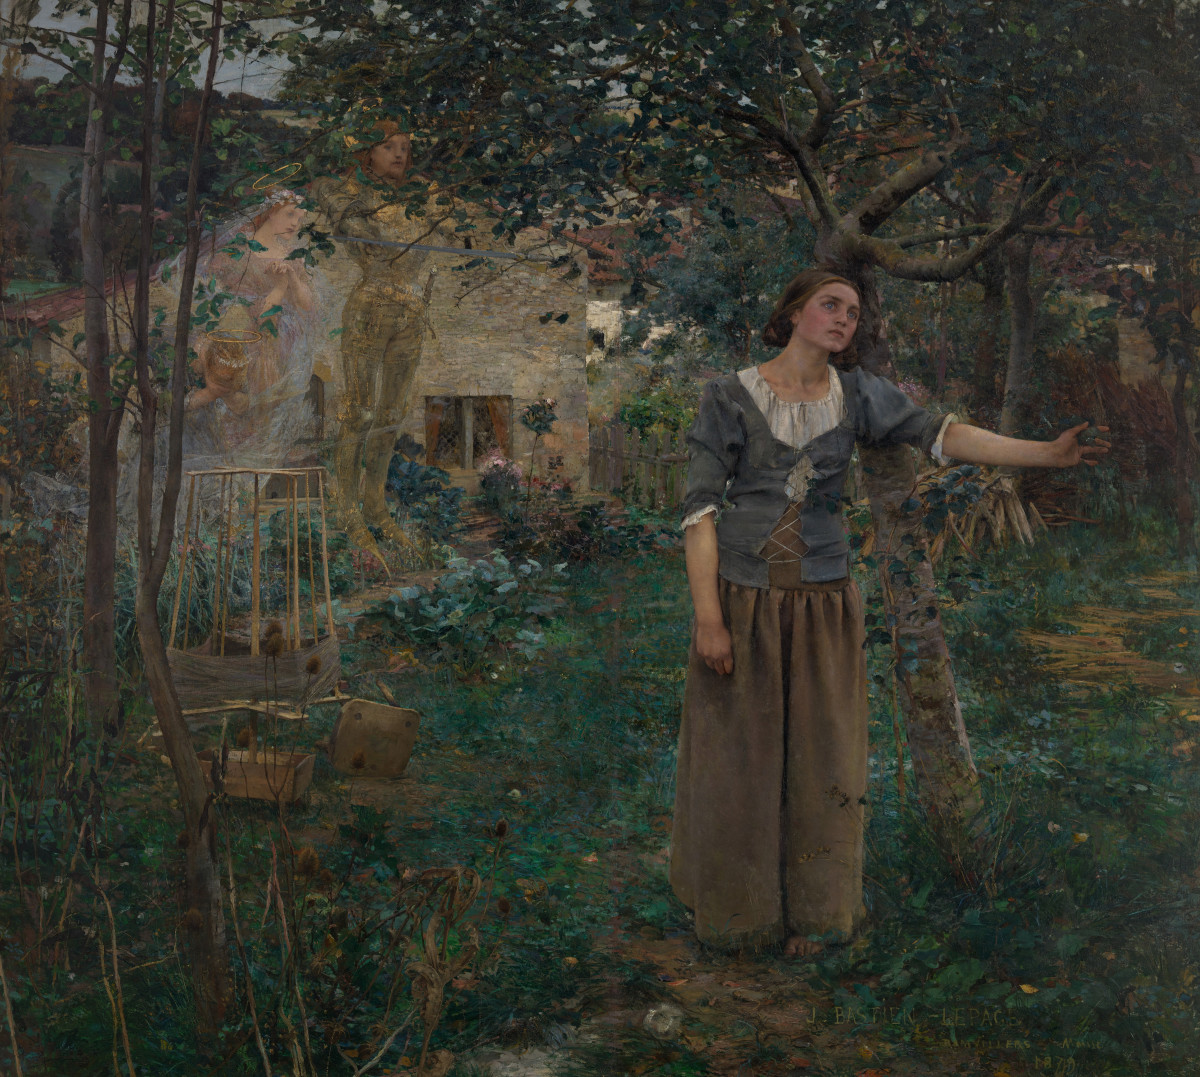 Joan of Arc, as painted by artist Jules Bastien-Lepage, in the moment when Saints Michael, Margaret, and Catherine appear to her in her parents' garden, rousing her to fight the English invaders in the Hundred Years War.